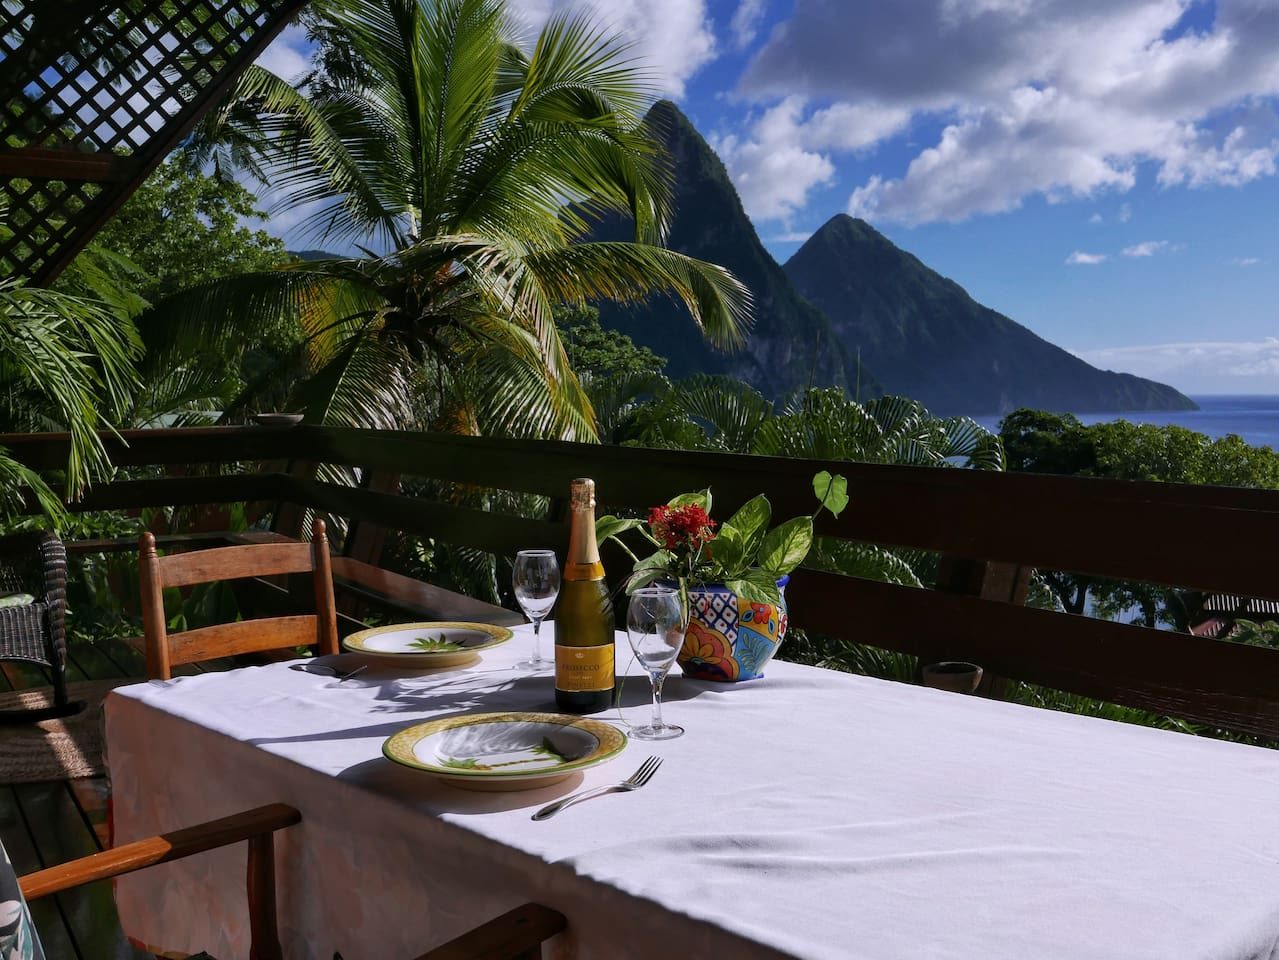 Enjoy the sweeping views of the Pitons and the Caribbean ocean from the Treehouse Hideaway II deck. Dine in the open air with the amazing views.